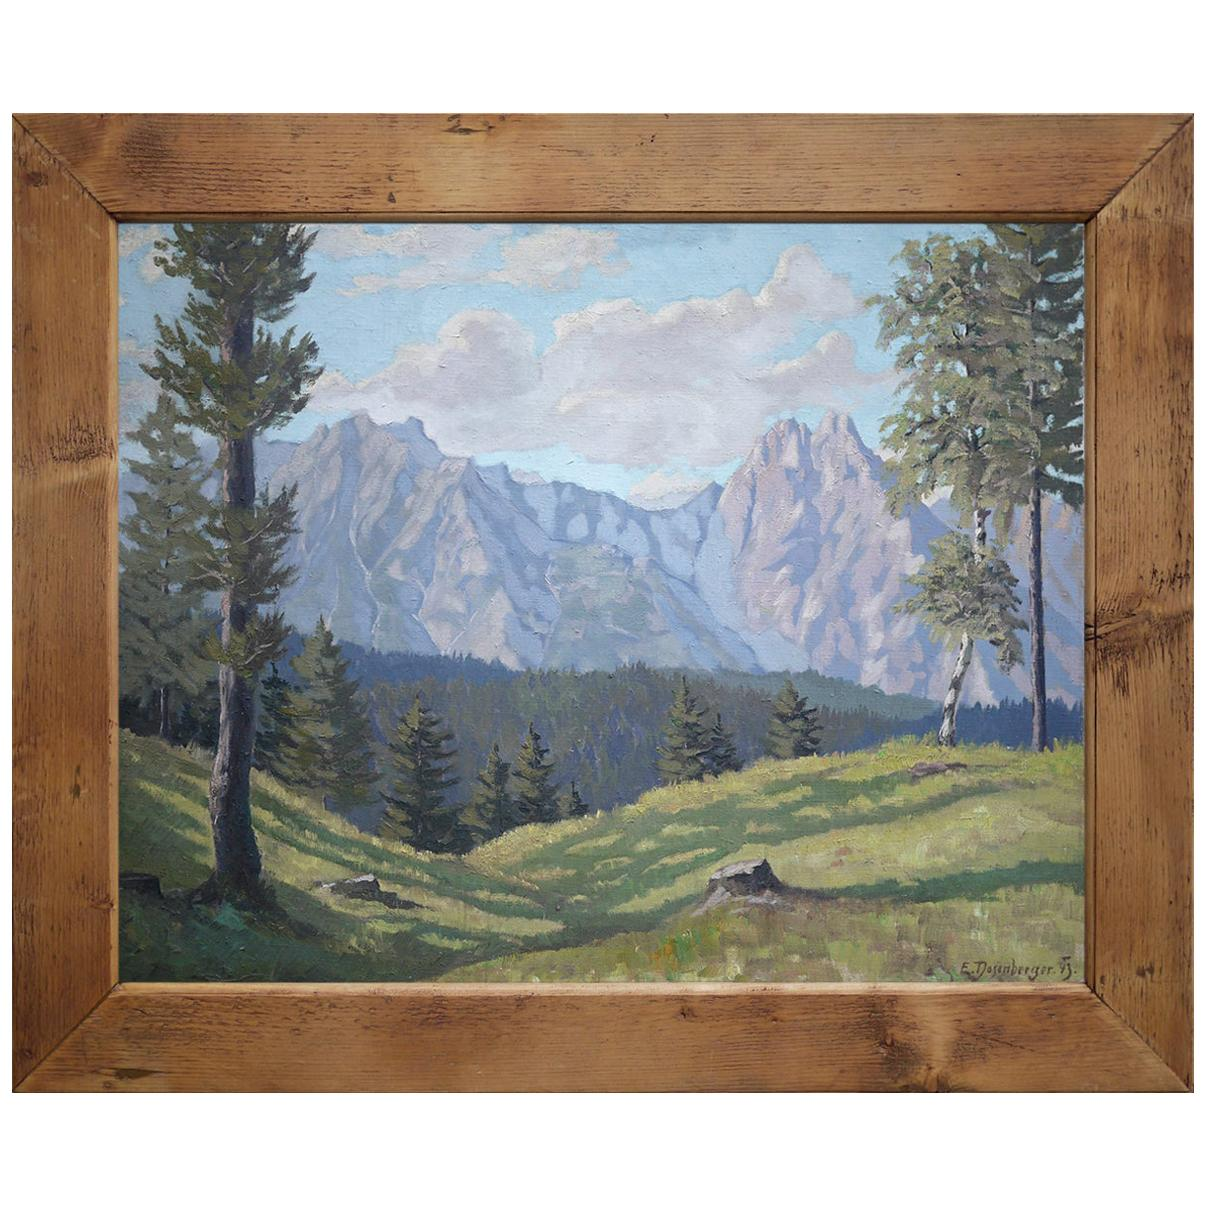 Mountain Painting, Alps, Tyrol, Oil on Canvas, Ernst, Dosenberger, 1943